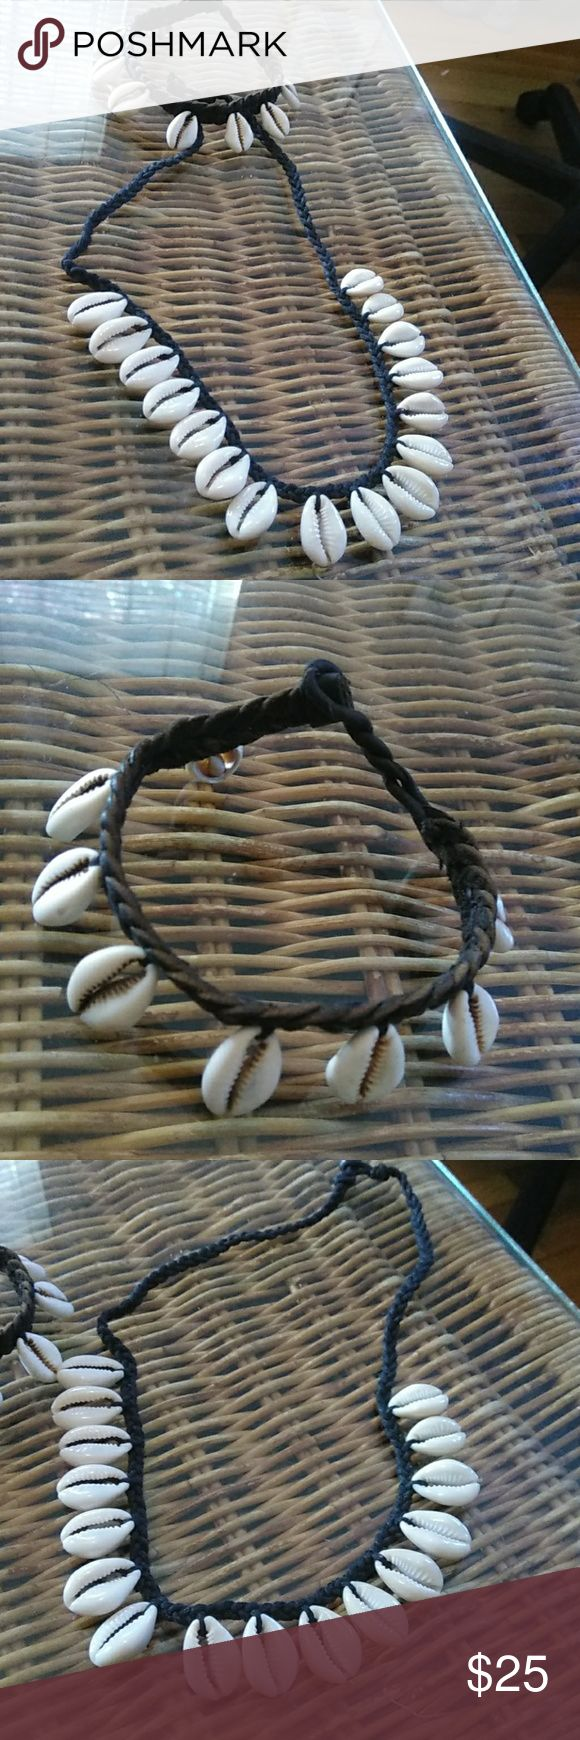 This is a Conch shell necklace and bracelet set Braided brown leather straps with conch shells attached can be worn by male or female. Jewelry Necklaces